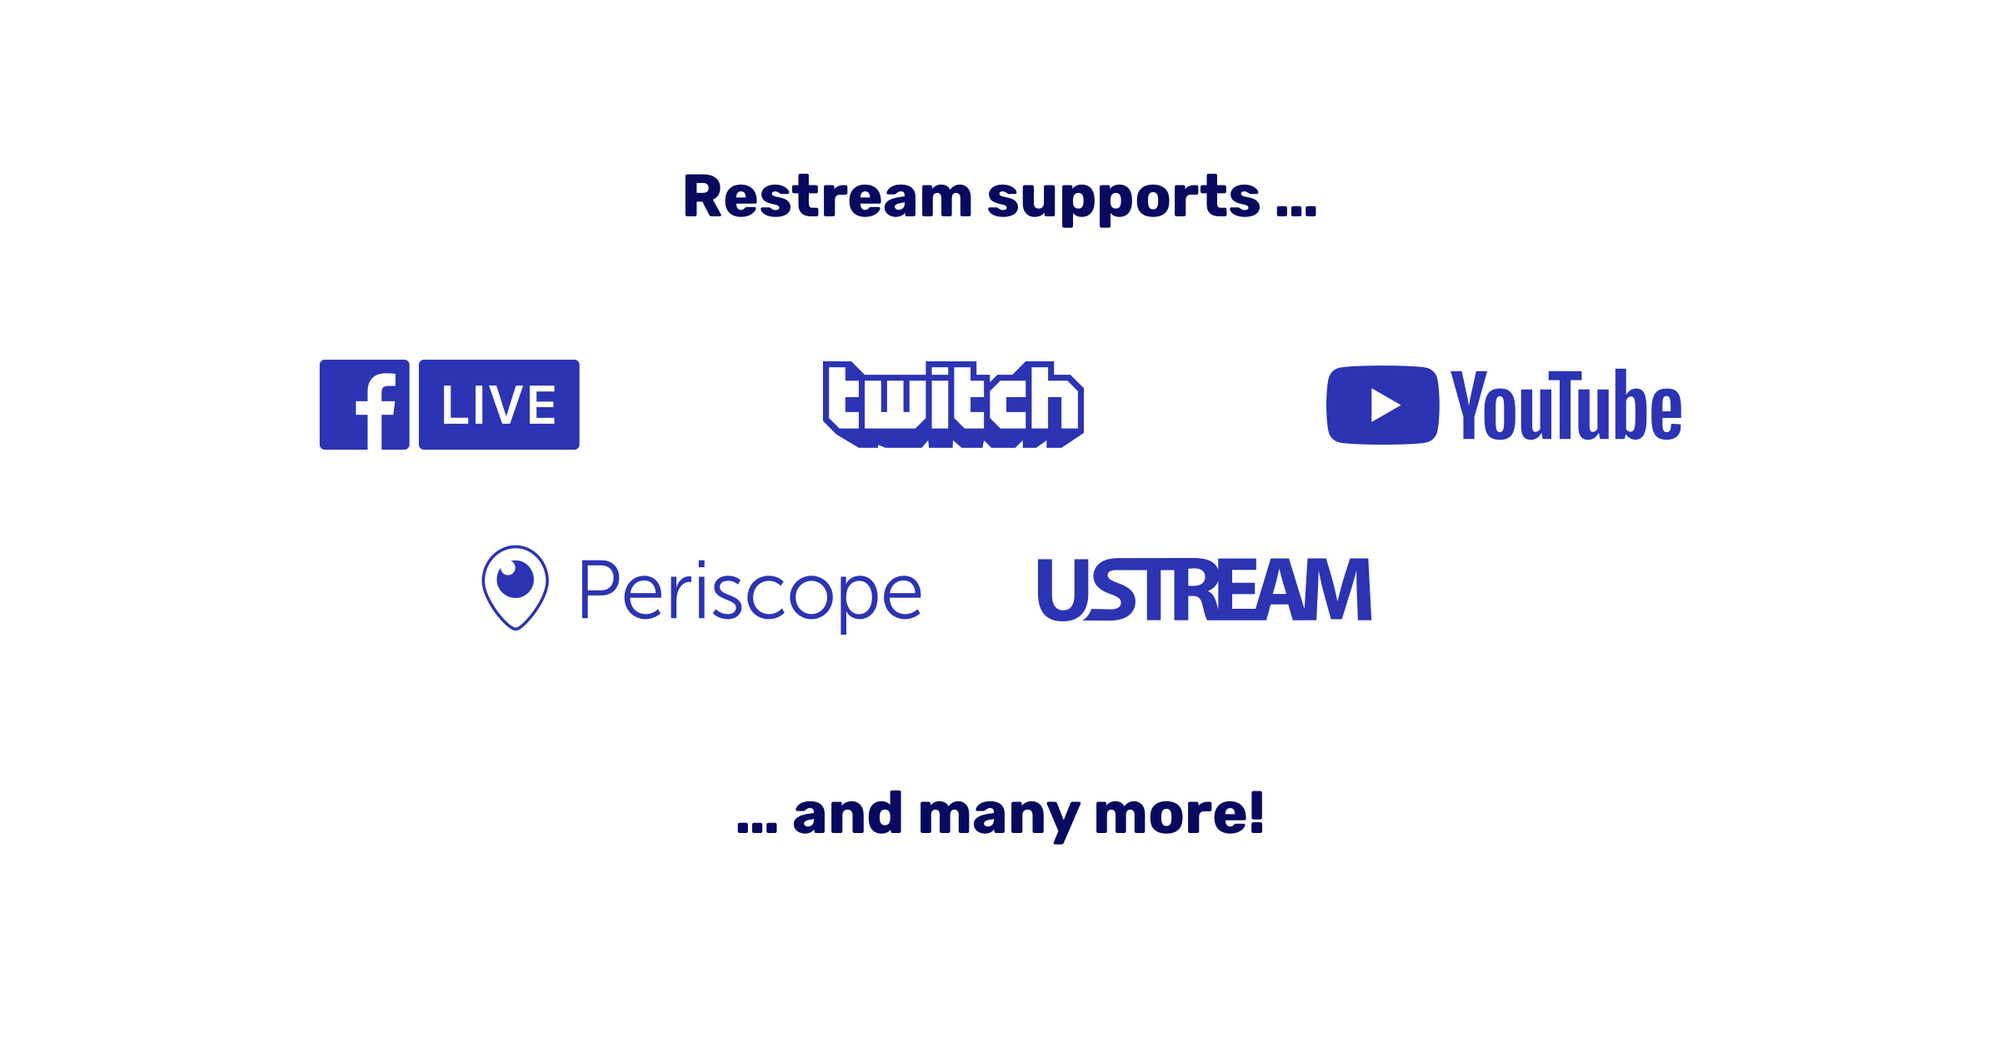 Restream supports Facebook Live, Twitch, YouTube, Periscope, Ustream, and many more!